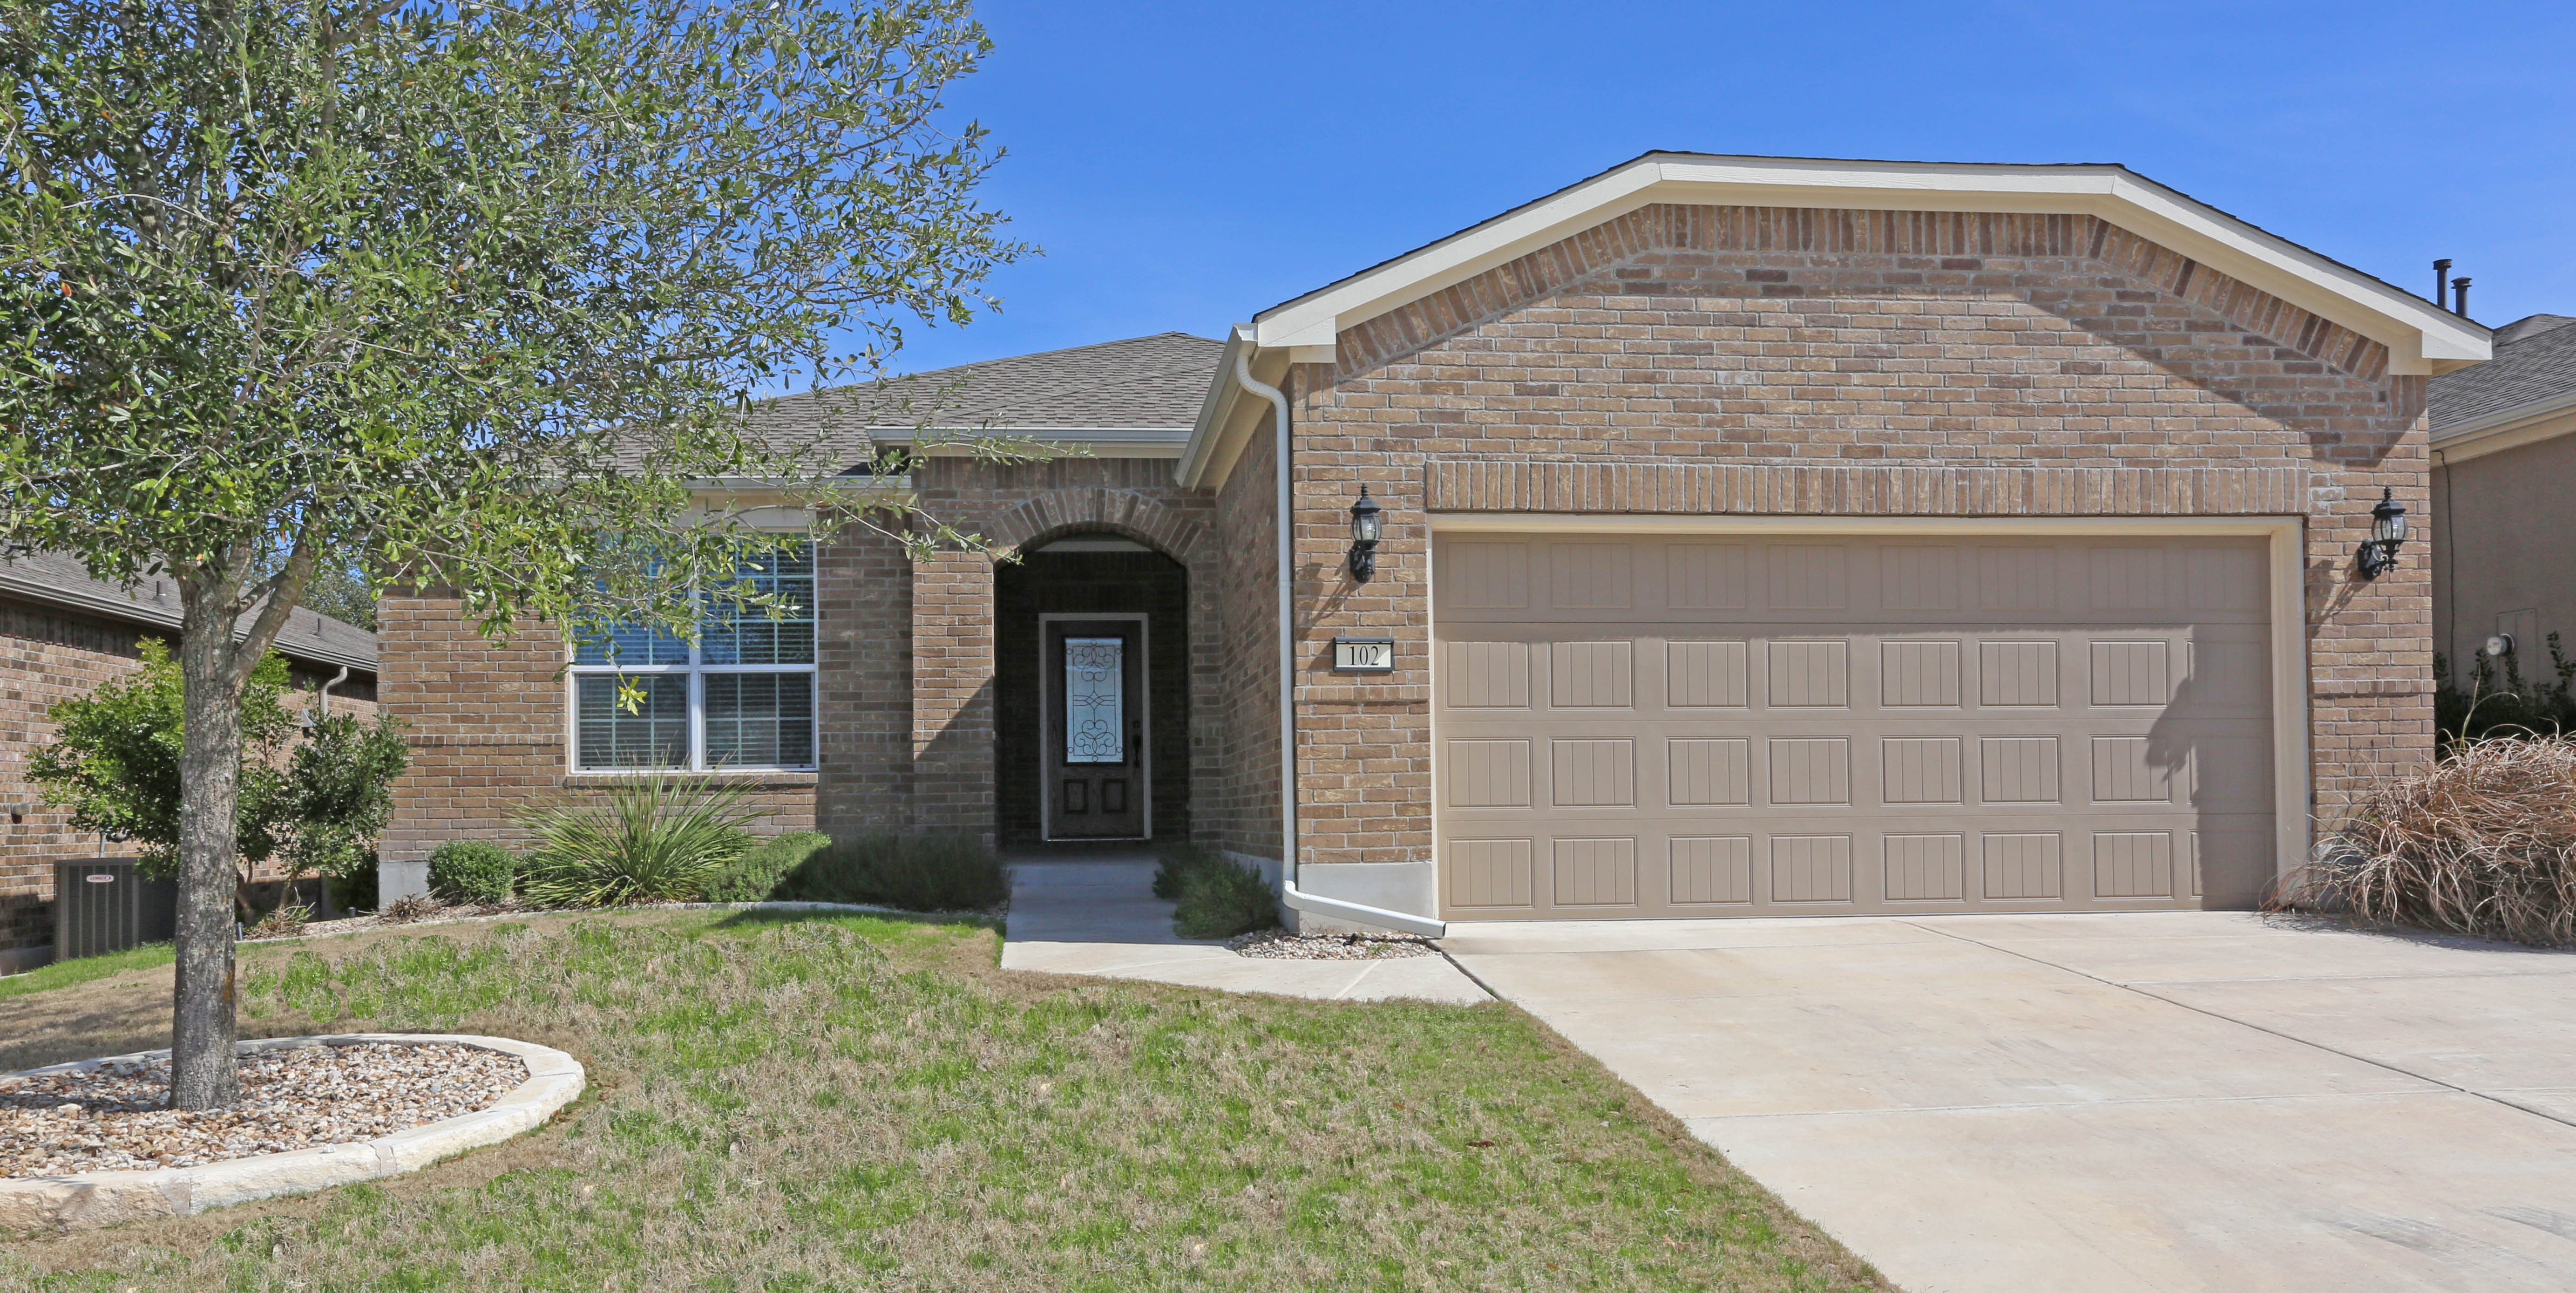 New To Market 102 Trinity LN Home For Sale In Sun City Texas by Rugg